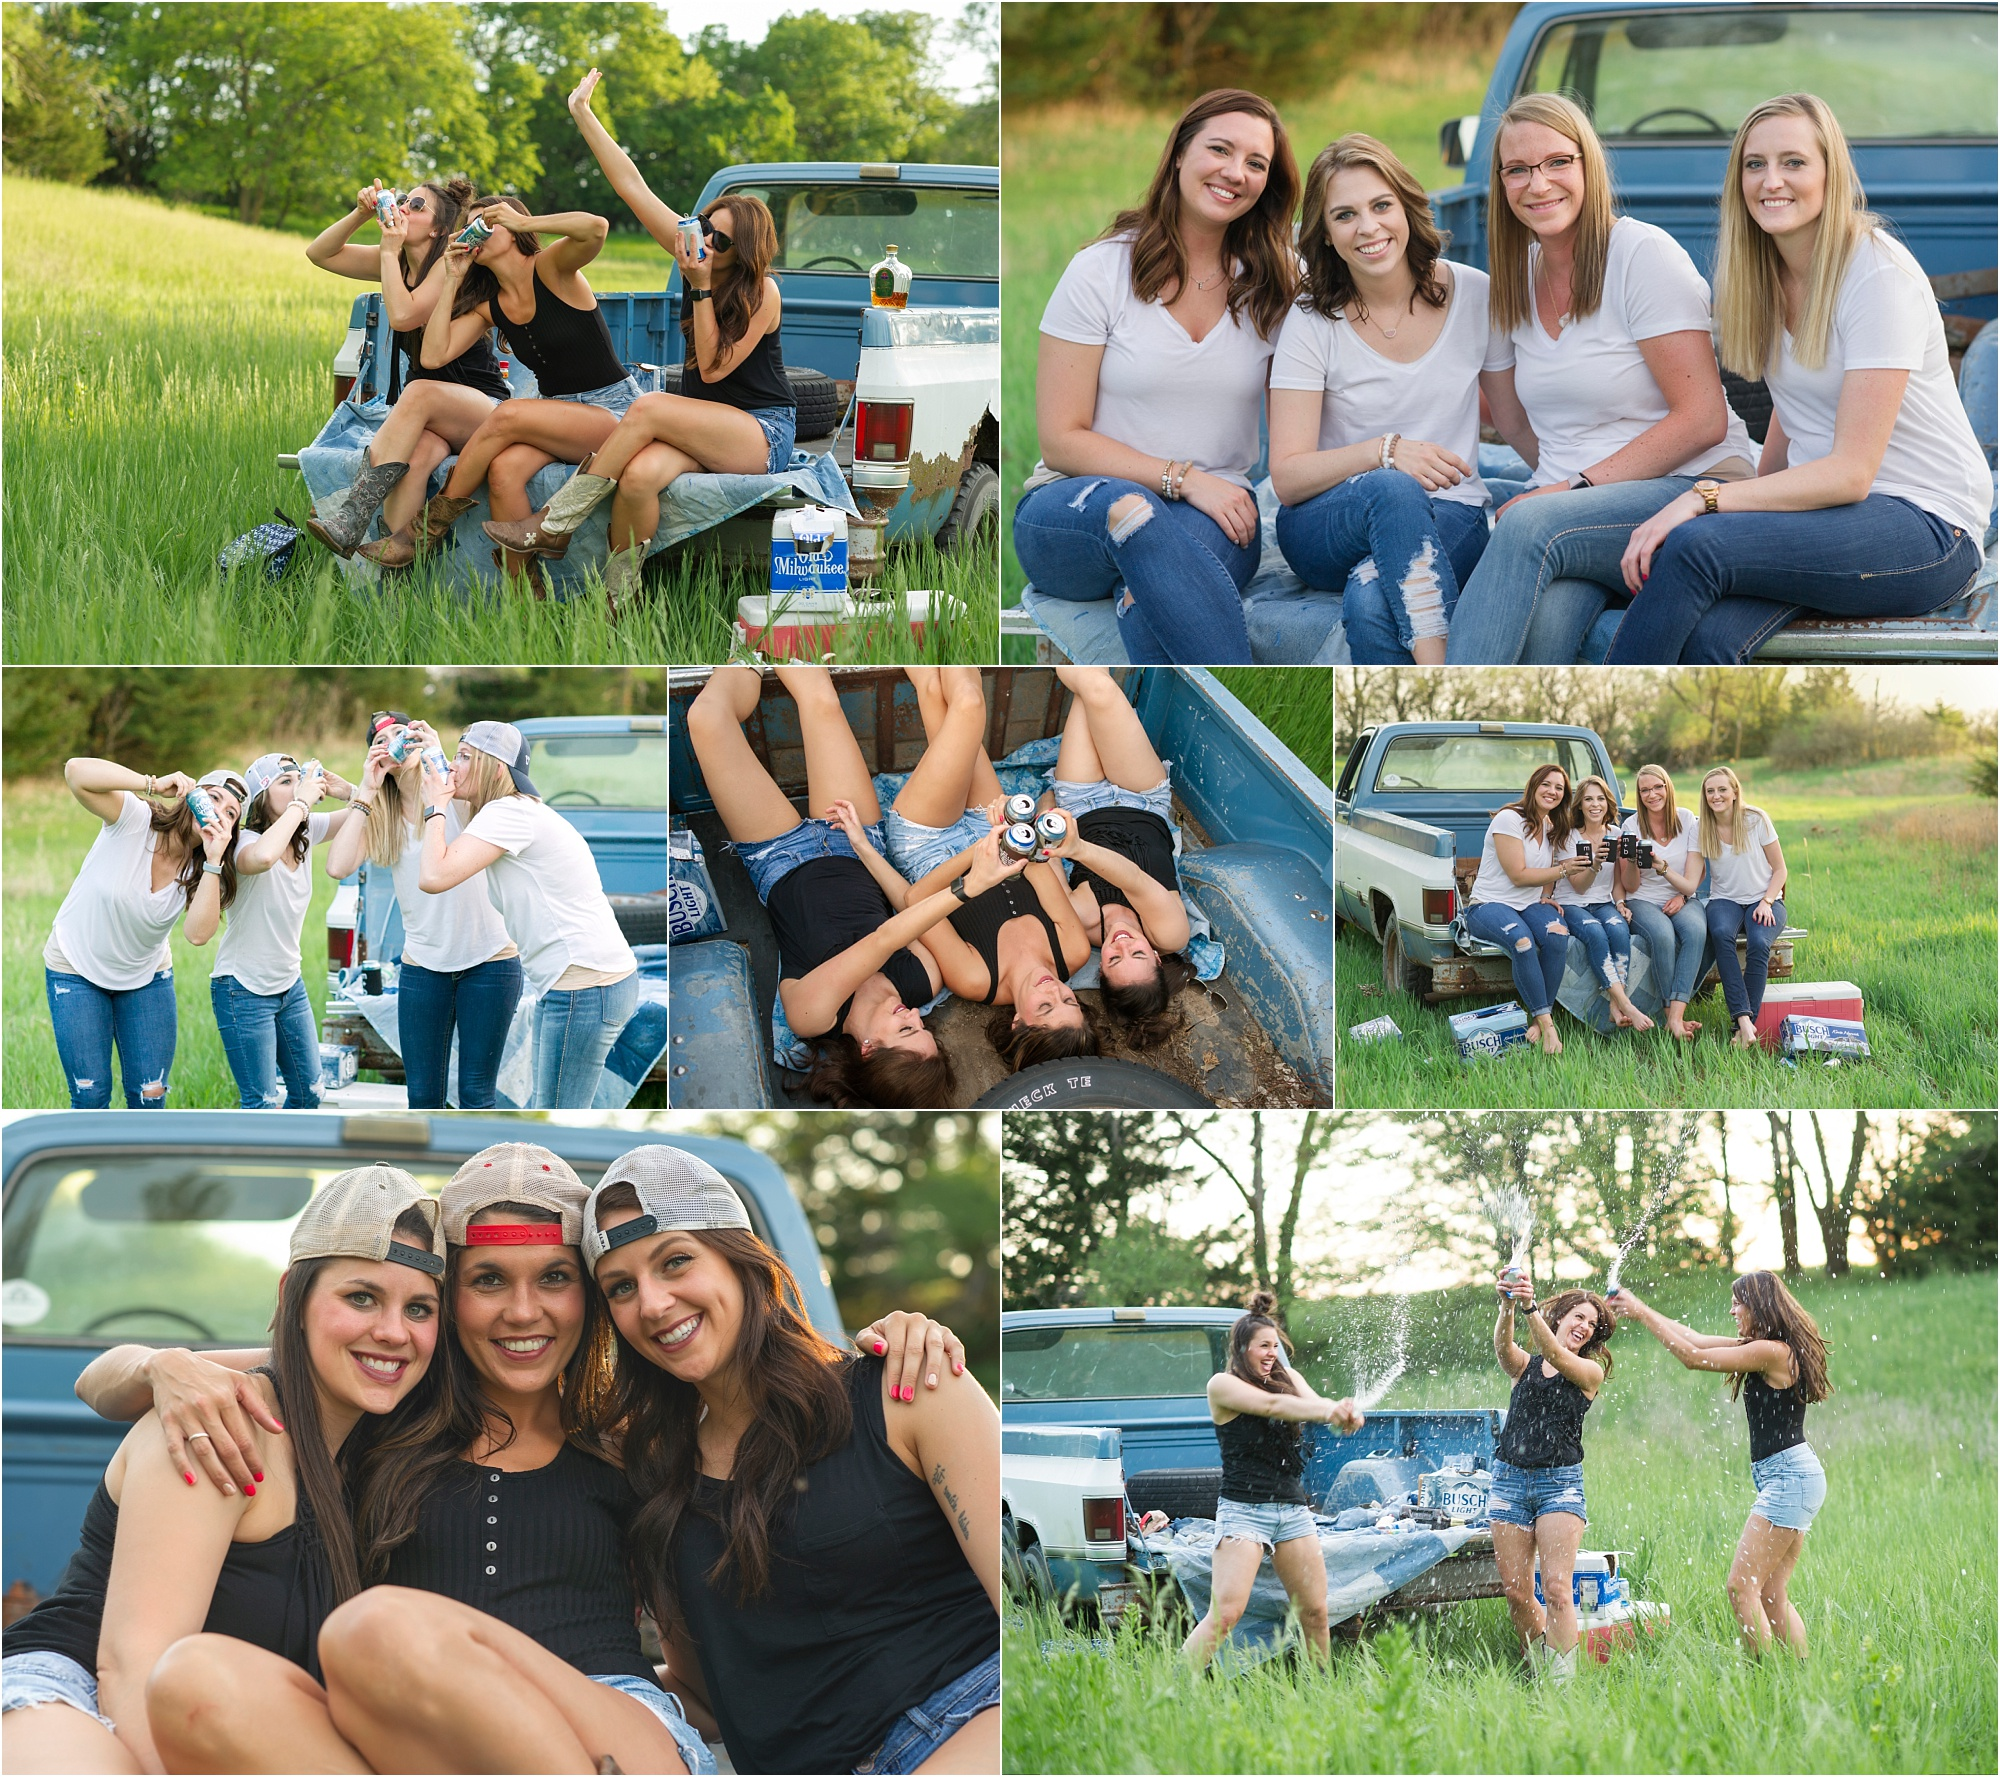 Nebraska-High-School-Senior-Family-Photographer-Kelsey-Nerud_0040.jpg